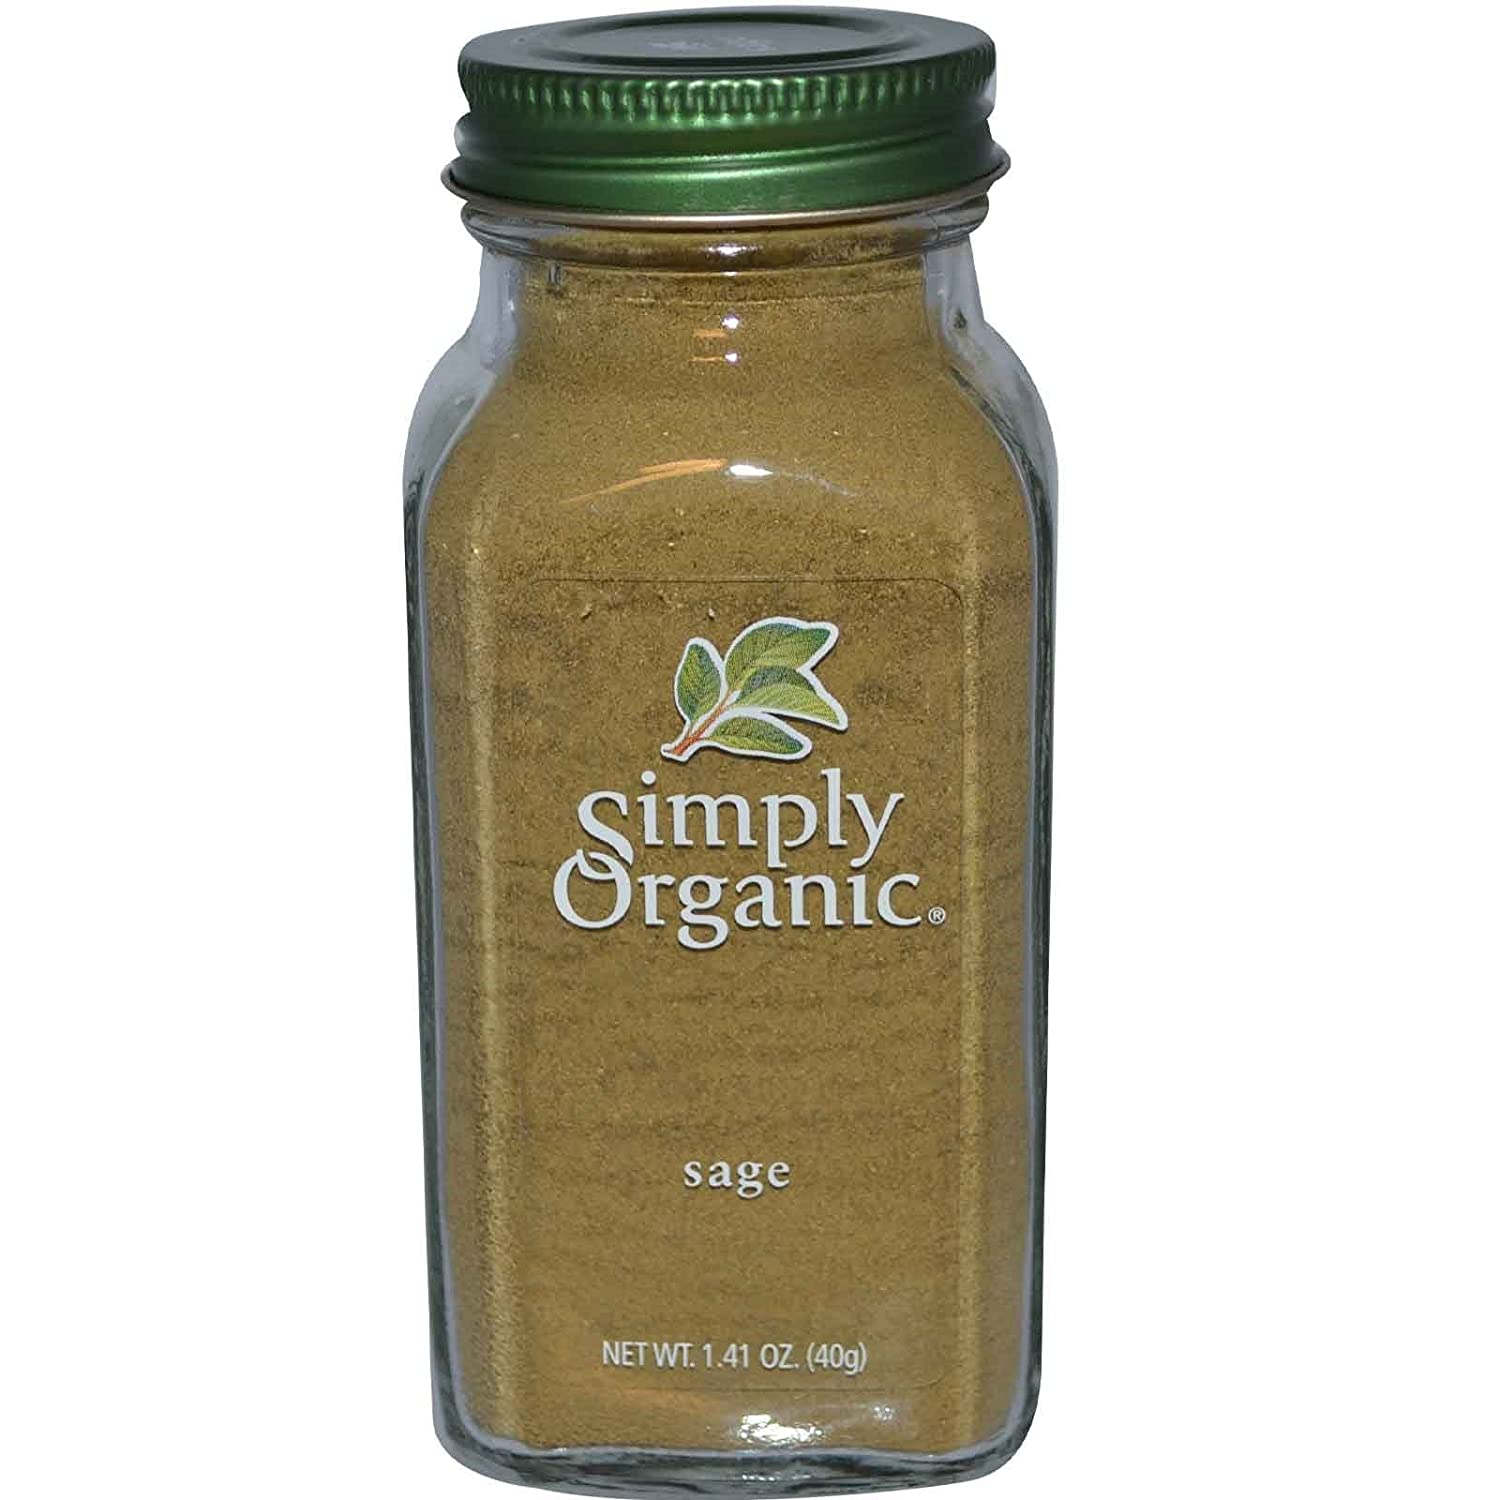 Simply Organic Challenge the lowest price Sage 1.41 Recommended oz - 2pcs g 40